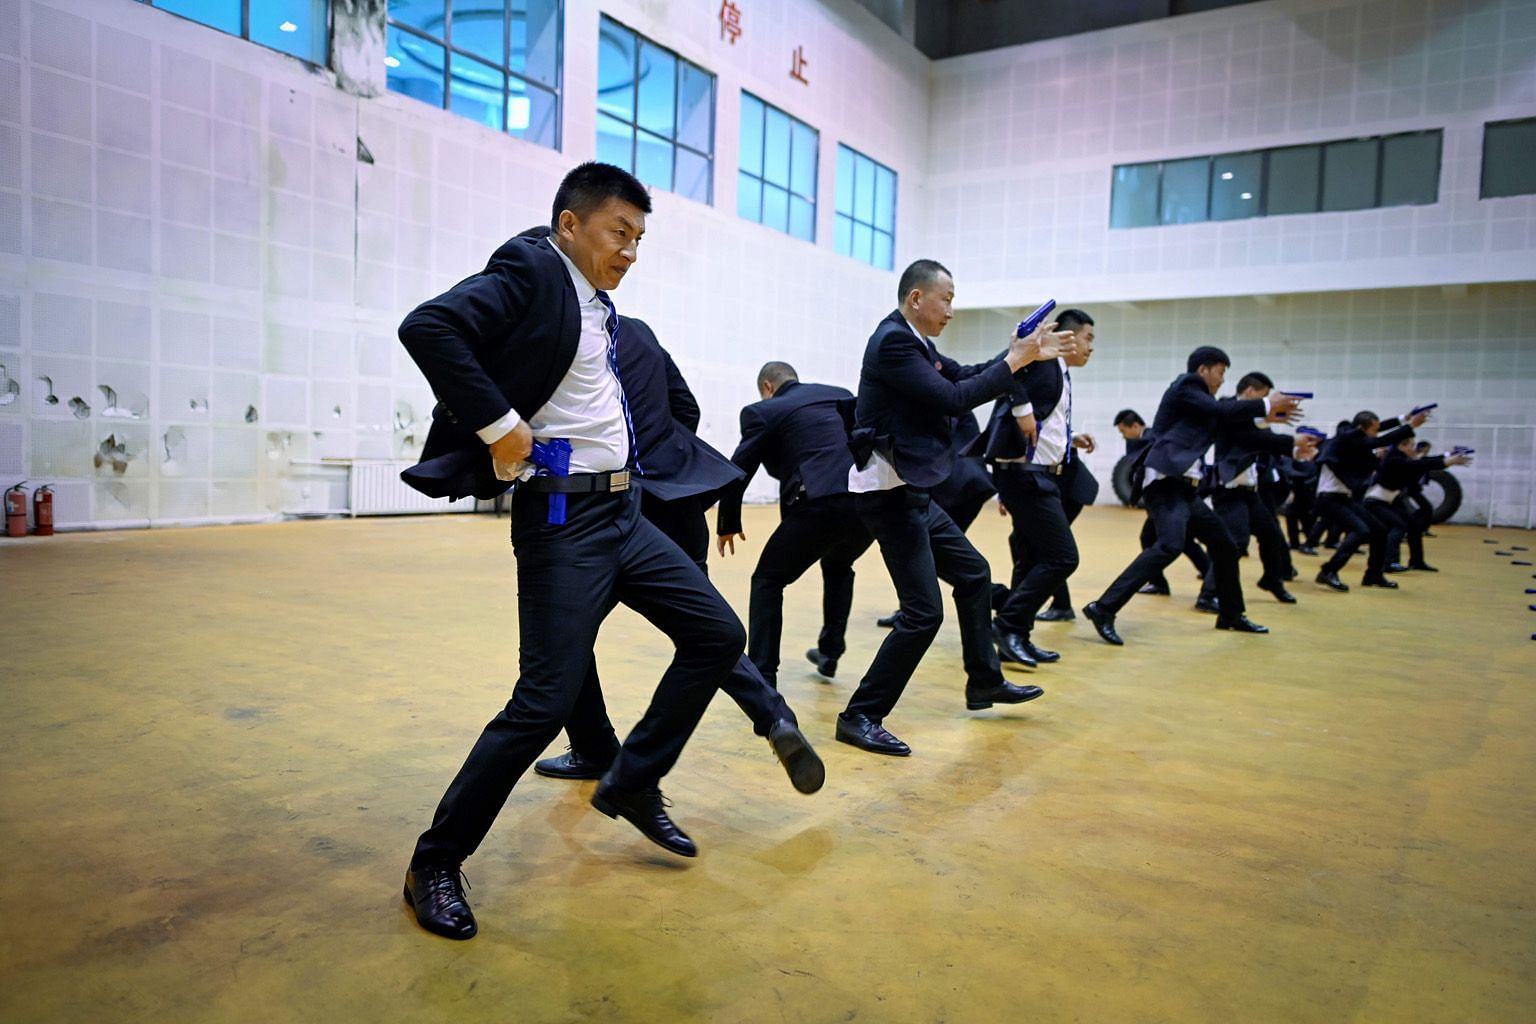 A group of students at a training session at the Genghis Security Academy in Tianjin, China, earlier this month.